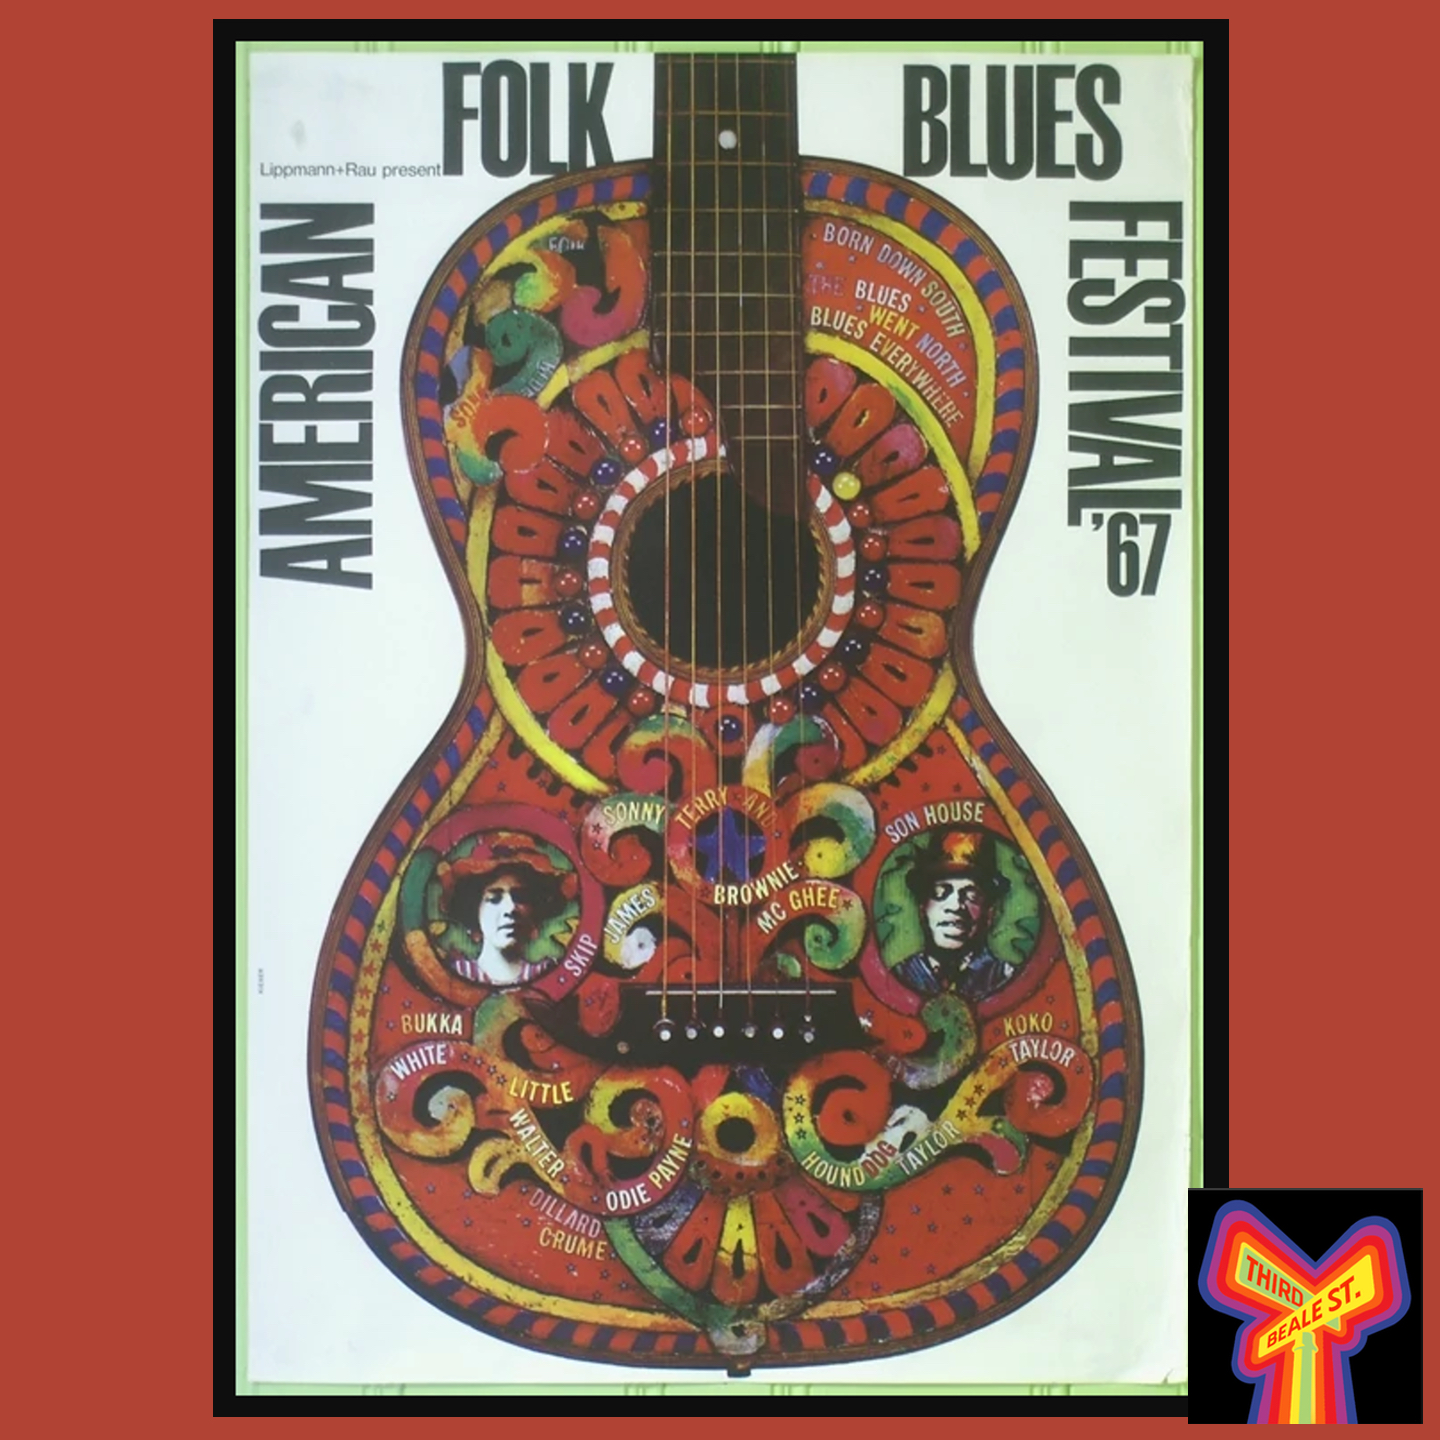 Caption: Some of the distinctive graphics from the American Folk Blues Festival tours, this one from 1967.